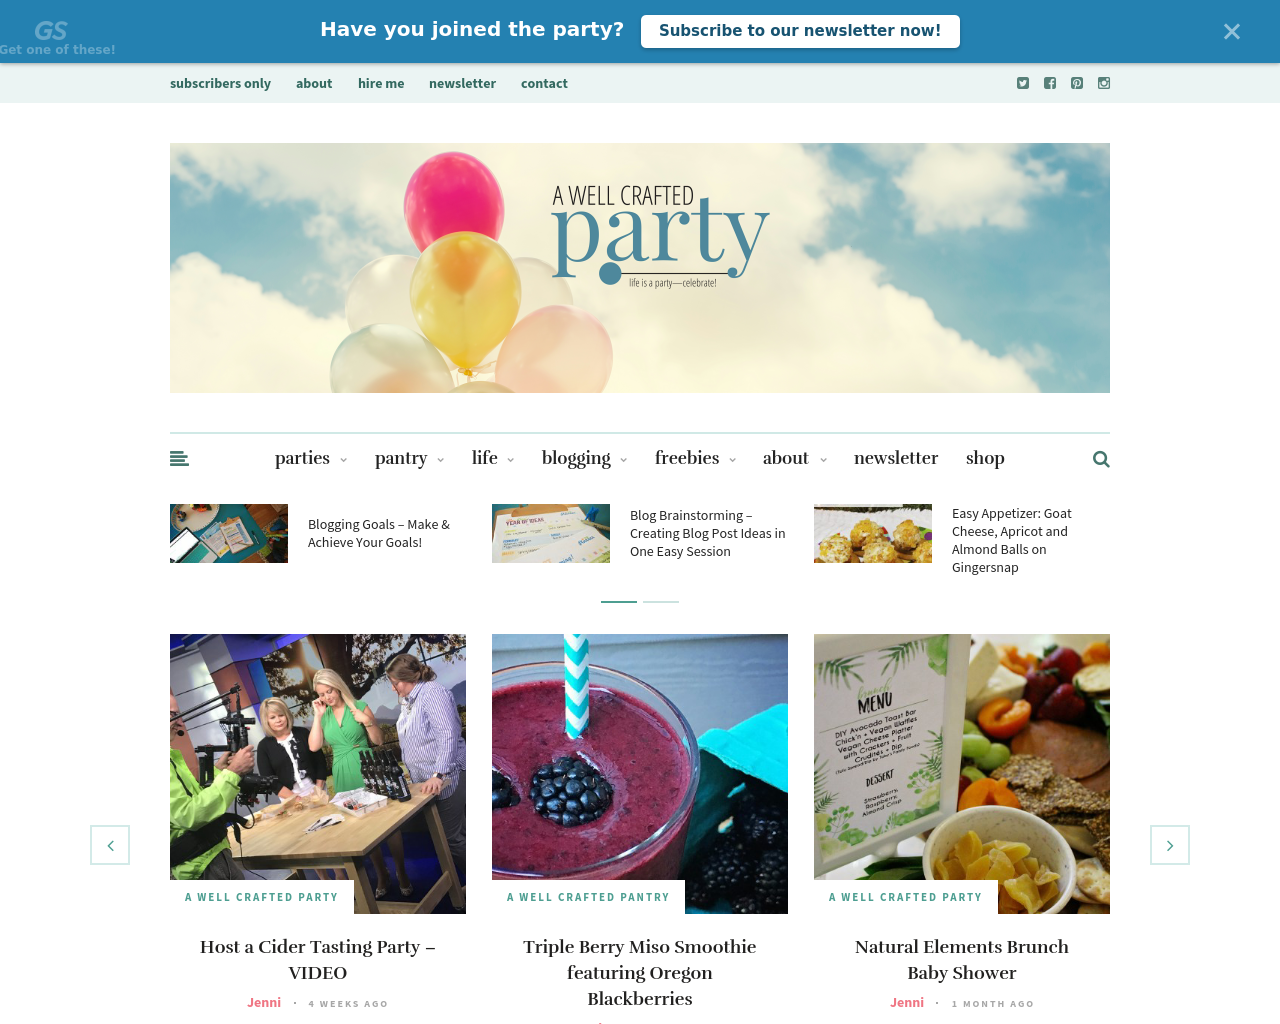 A-Well-Crafted-Party-Advertising-Reviews-Pricing